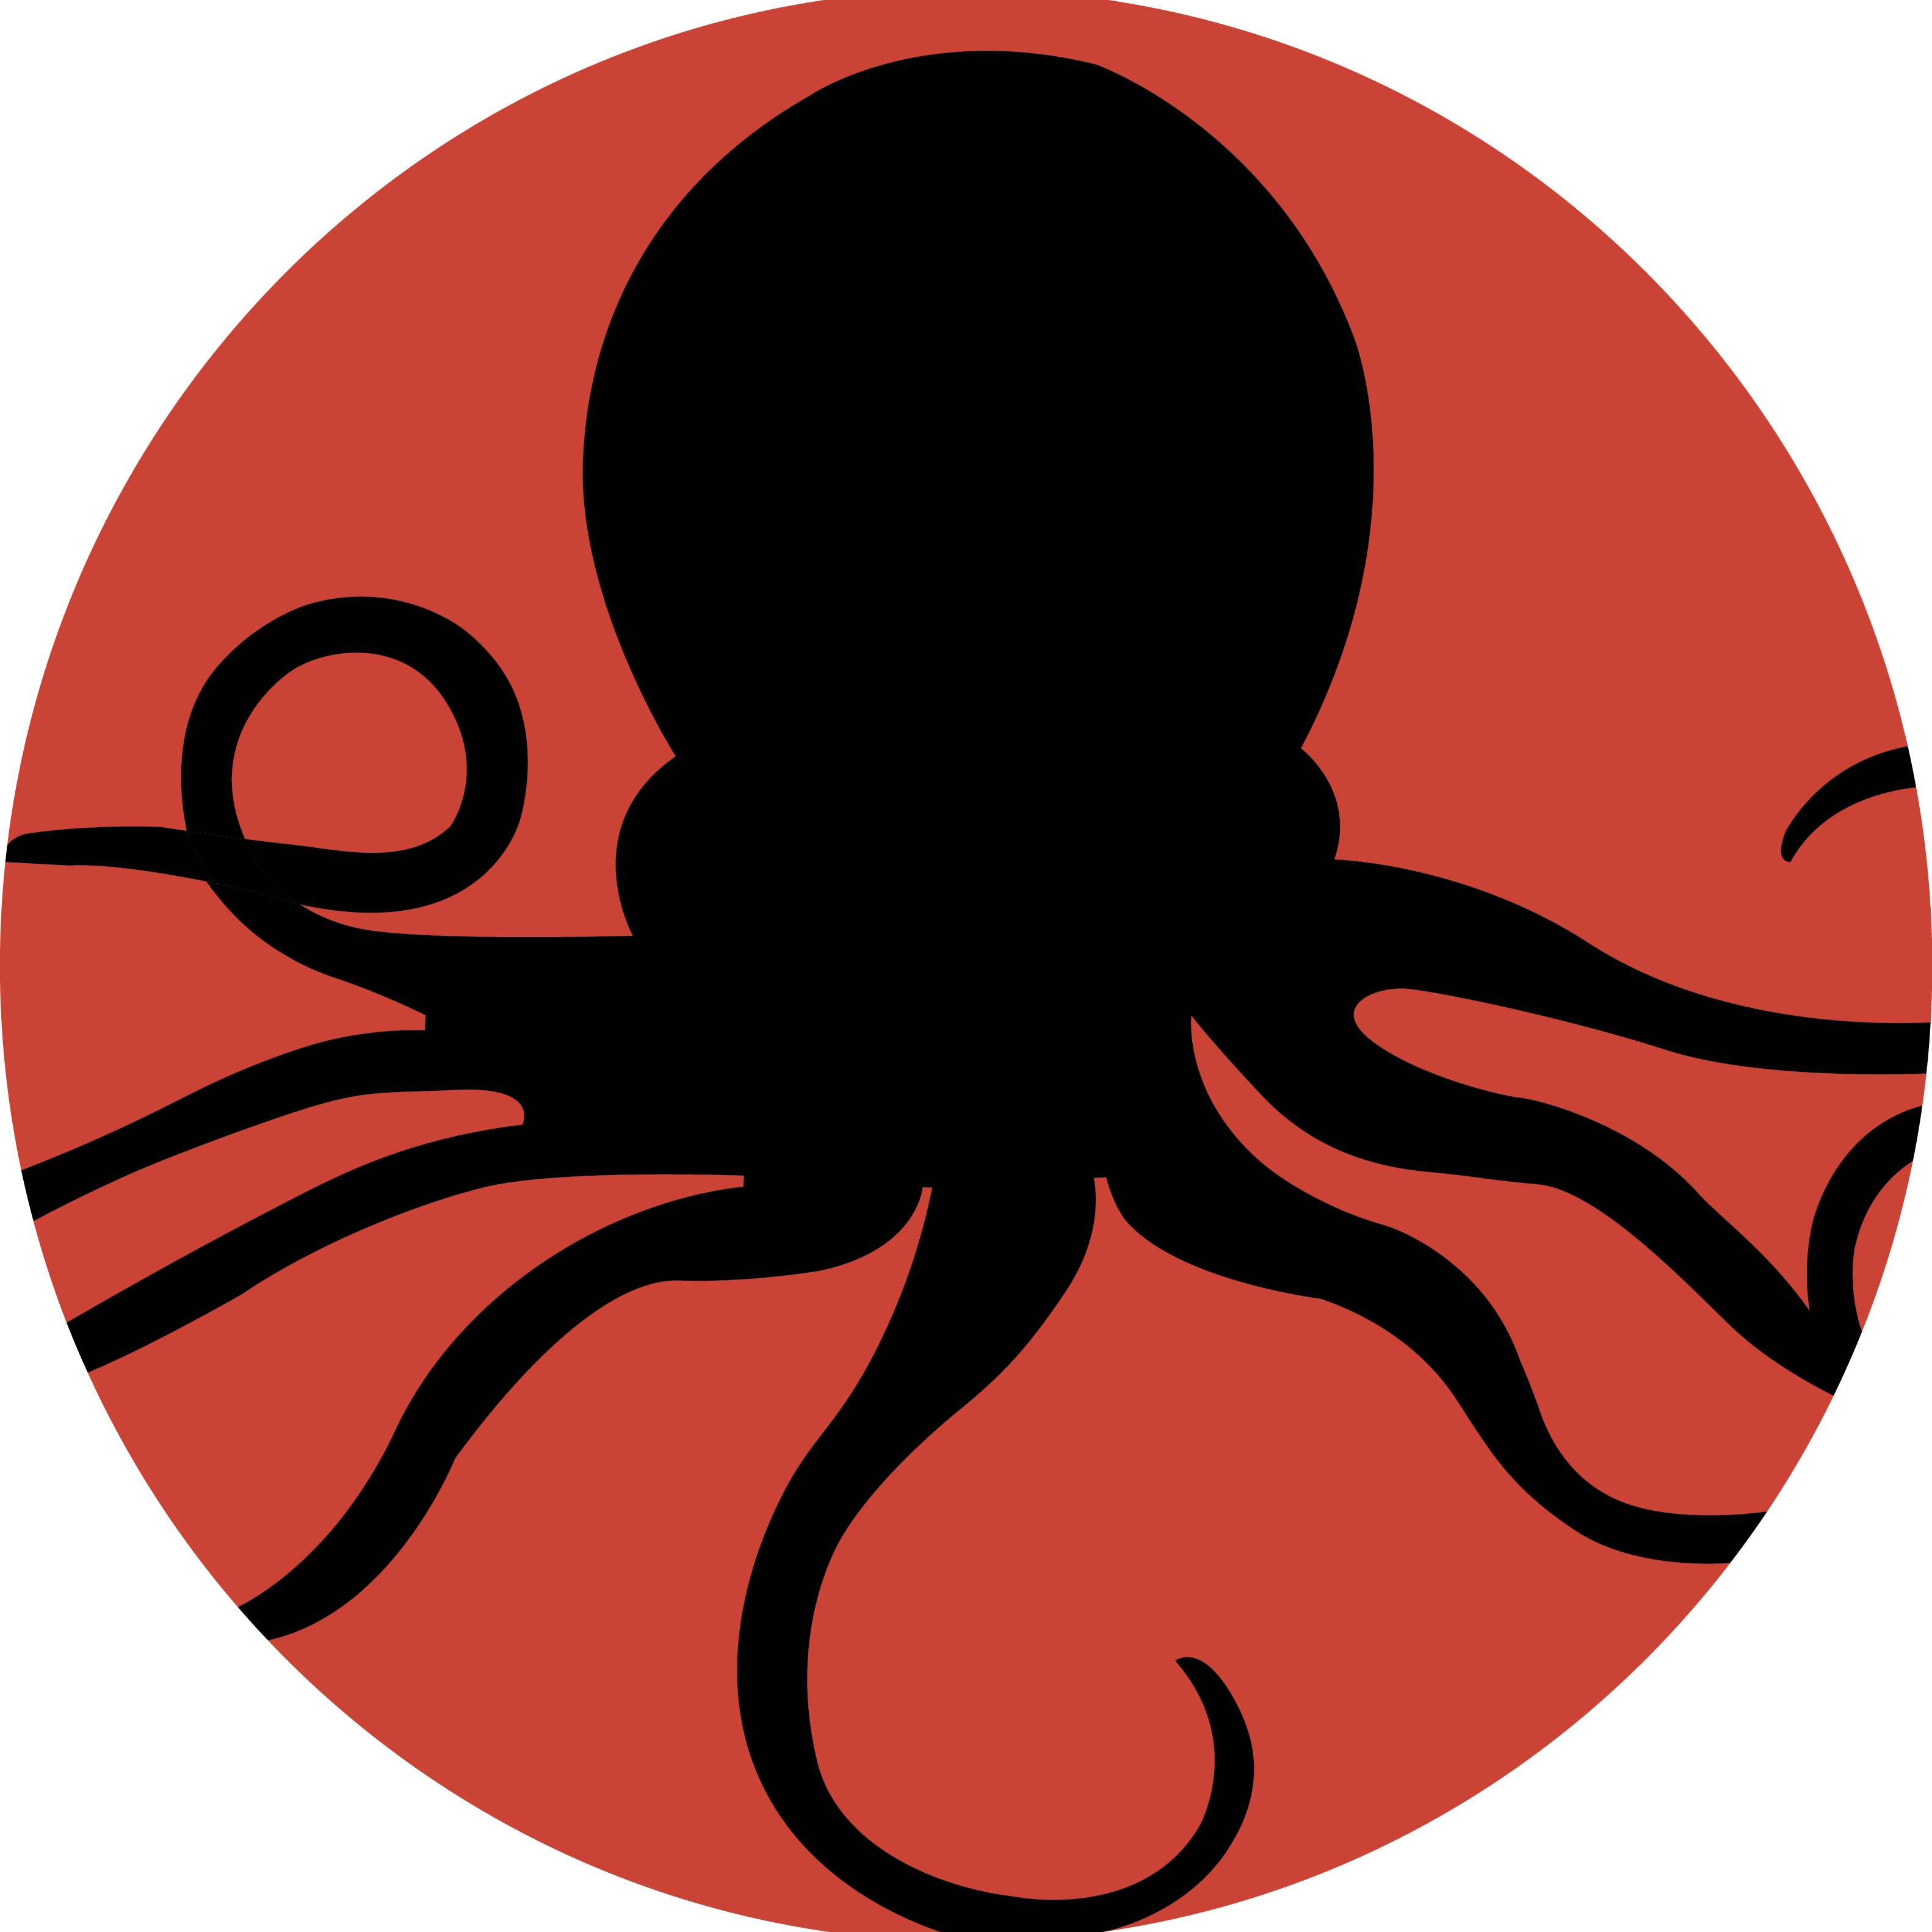 Octopus Cephalopod Animal Invertebrate C-Octopus Cephalopod Animal Invertebrate Clip art - eva longoria 3165*3165  transprent Png Free Download - Flower, Silhouette, Cephalopod.-18